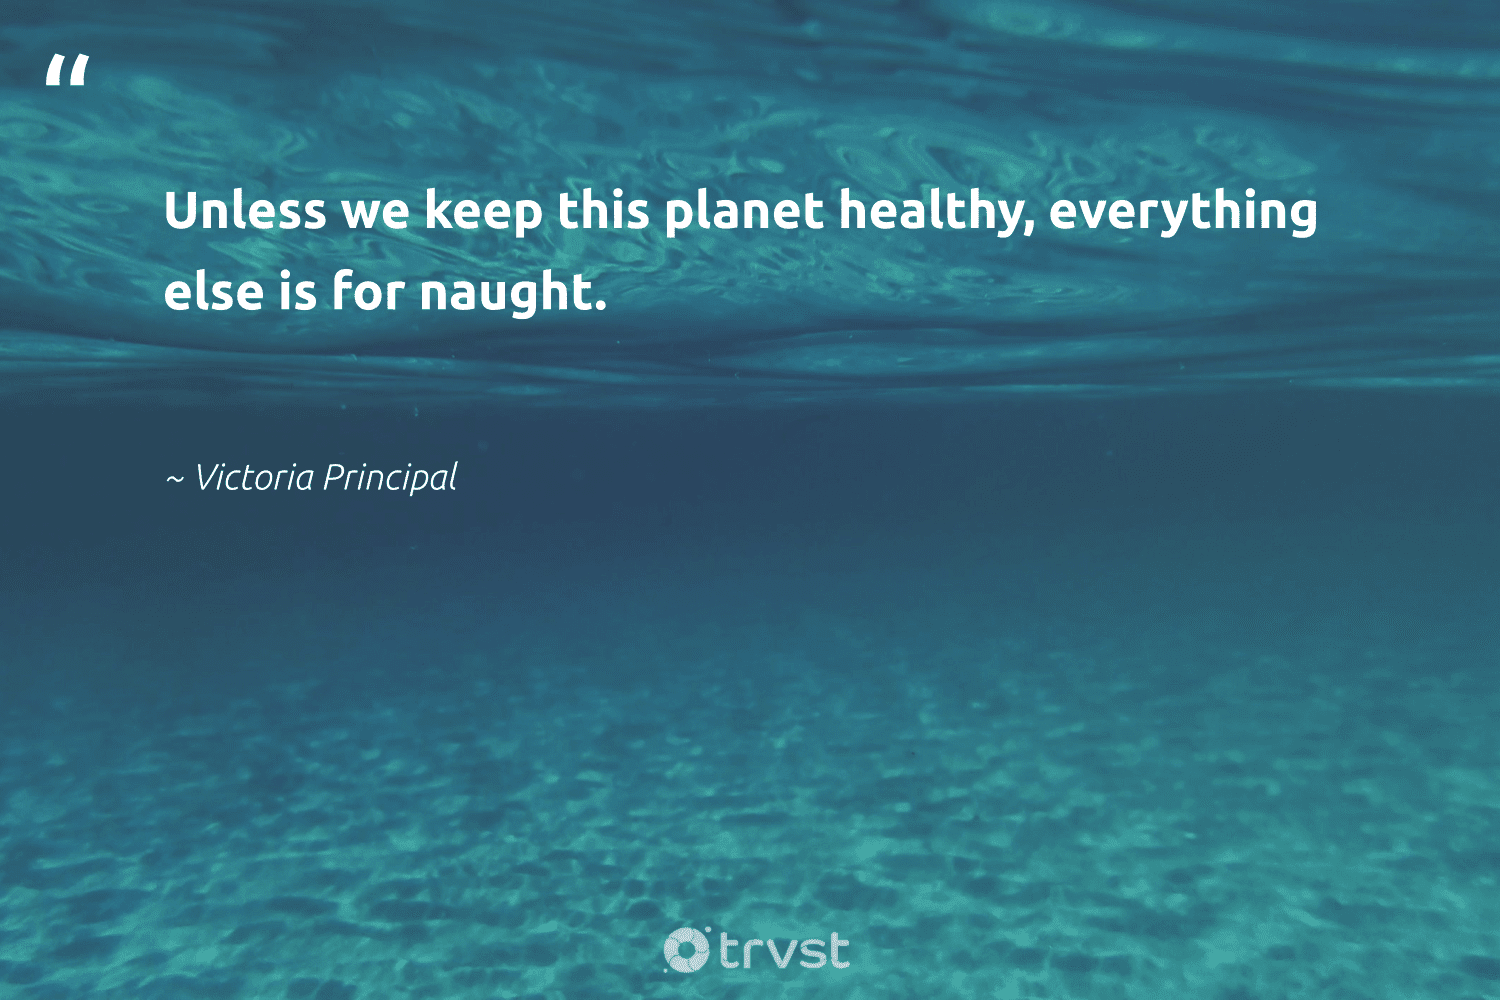 """""""Unless we keep this planet healthy, everything else is for naught.""""  - Victoria Principal #trvst #quotes #environment #planet #healthy #mothernature #ecofriendly #gogreen #dosomething #nature #sustainability #eco"""